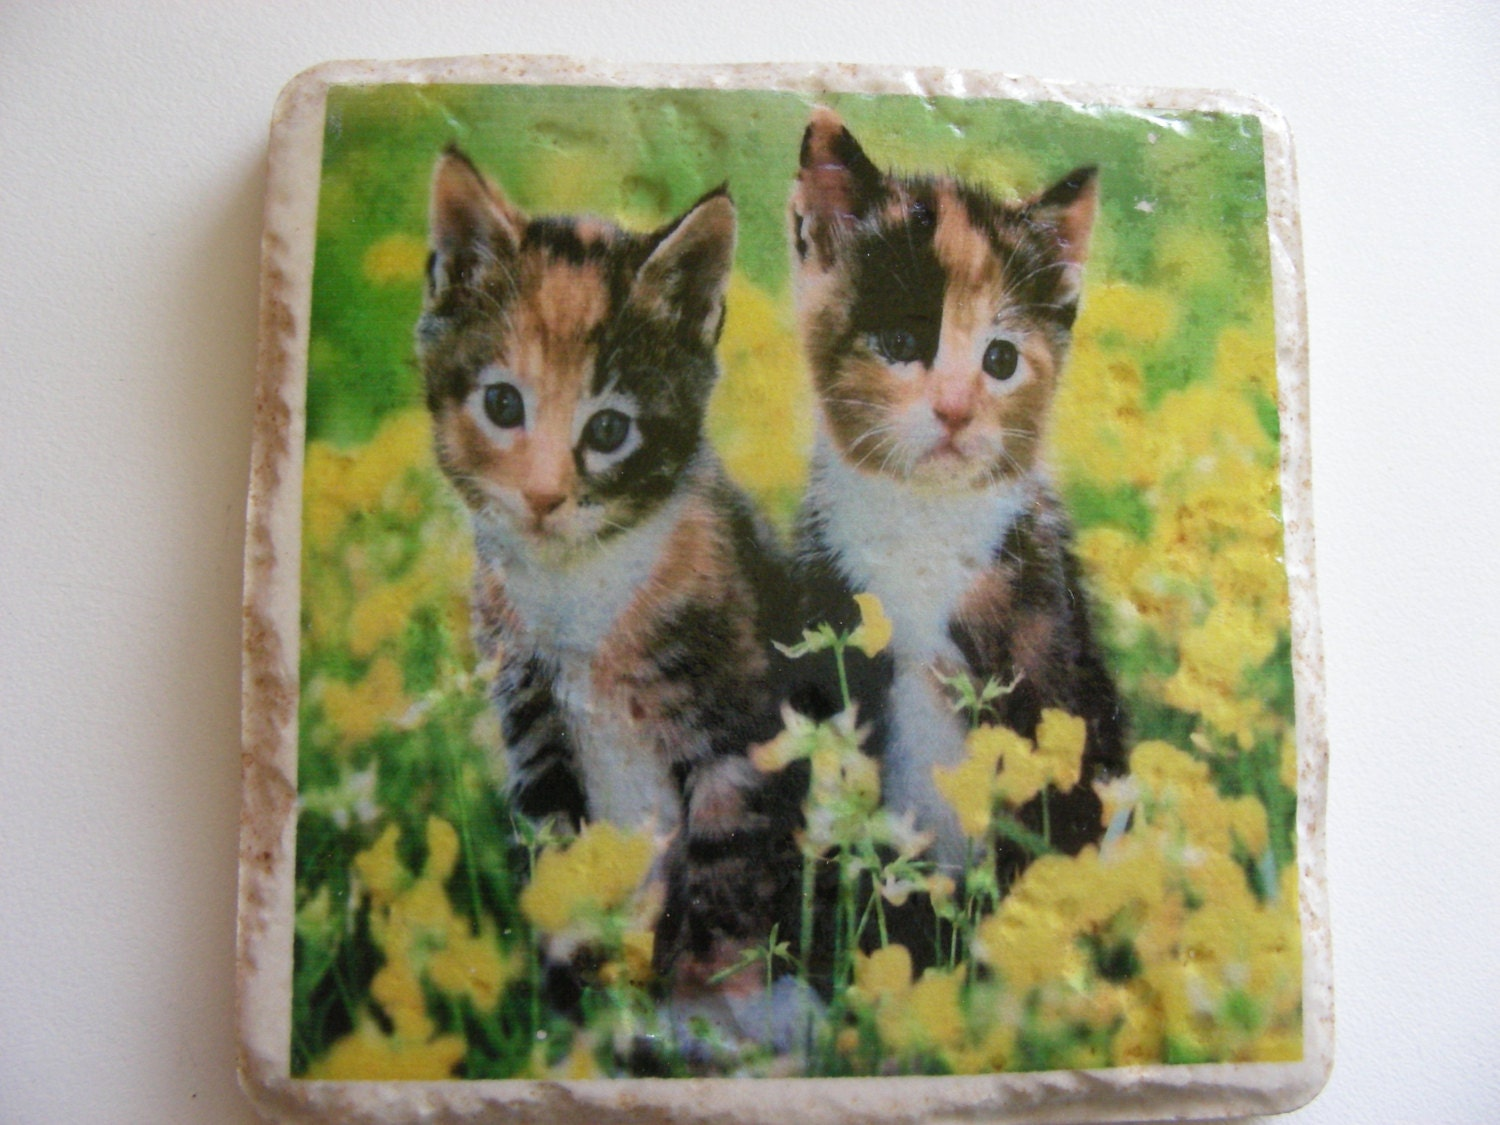 Cat Ceramic Tile Coasters